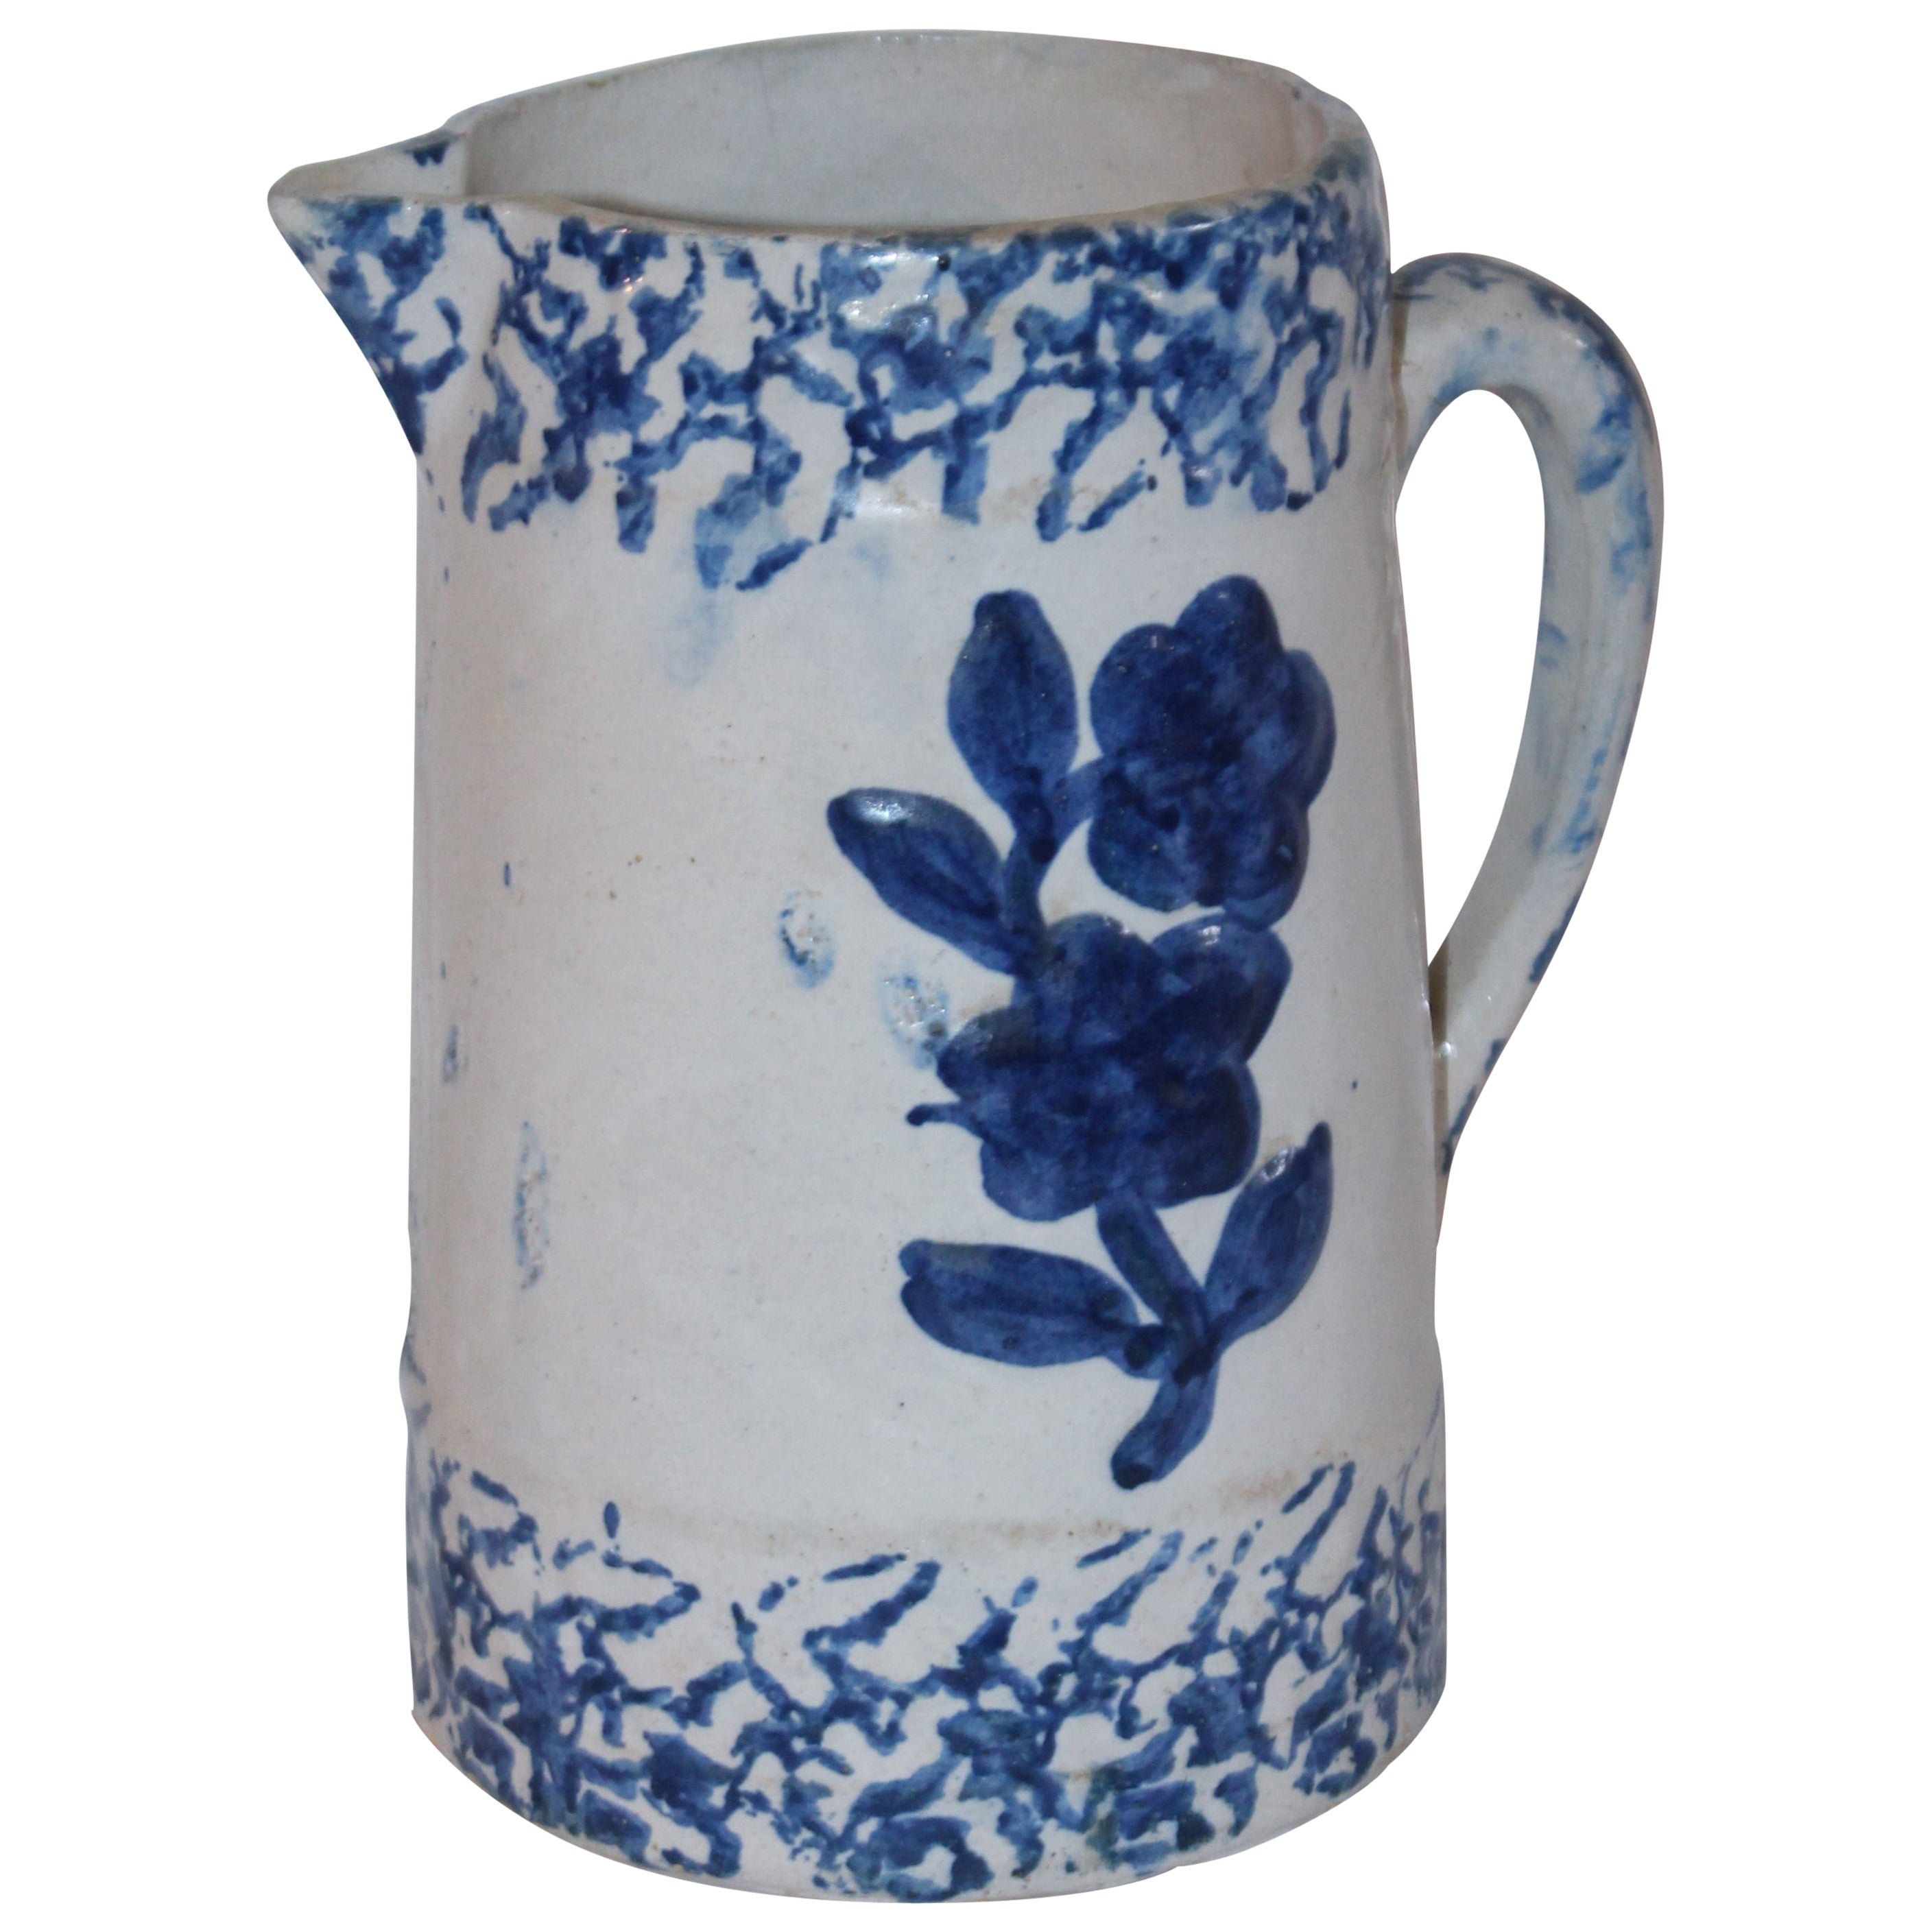 19th Century Sponge Pitcher with Floral Design